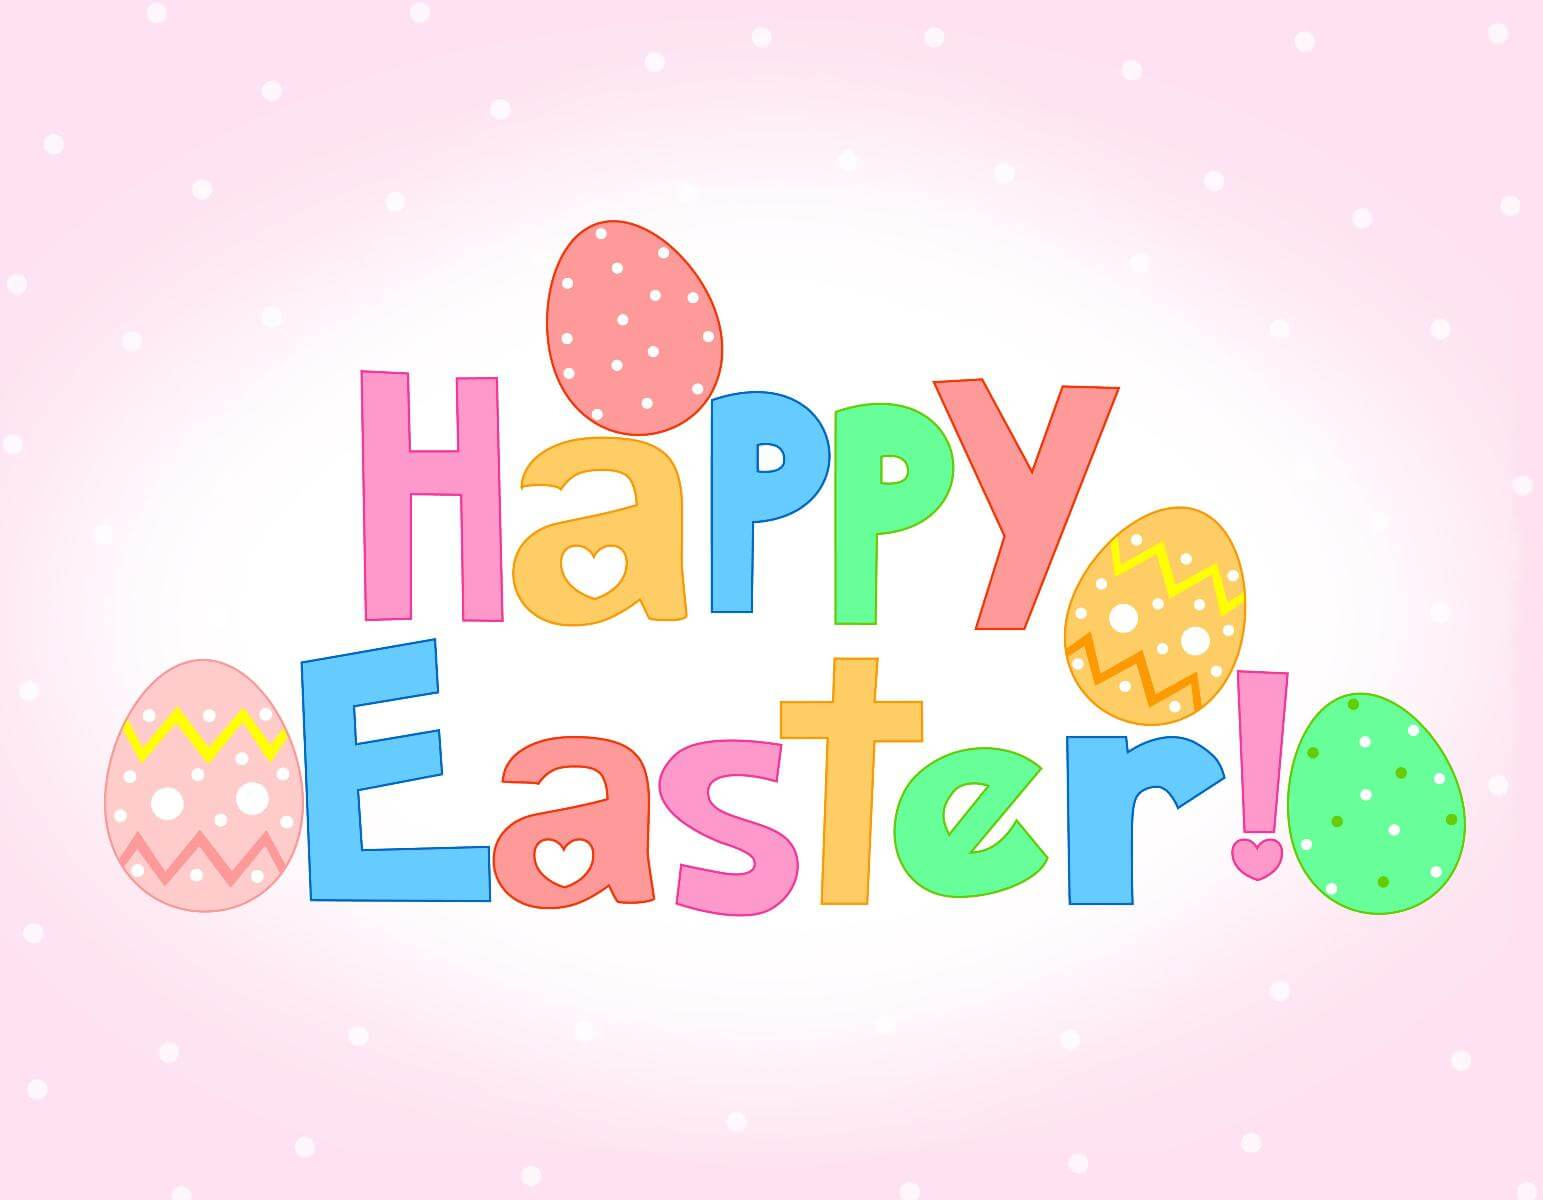 Easter Egg Image Pictures Clipart HD Wallpapers Funny Meme Photos